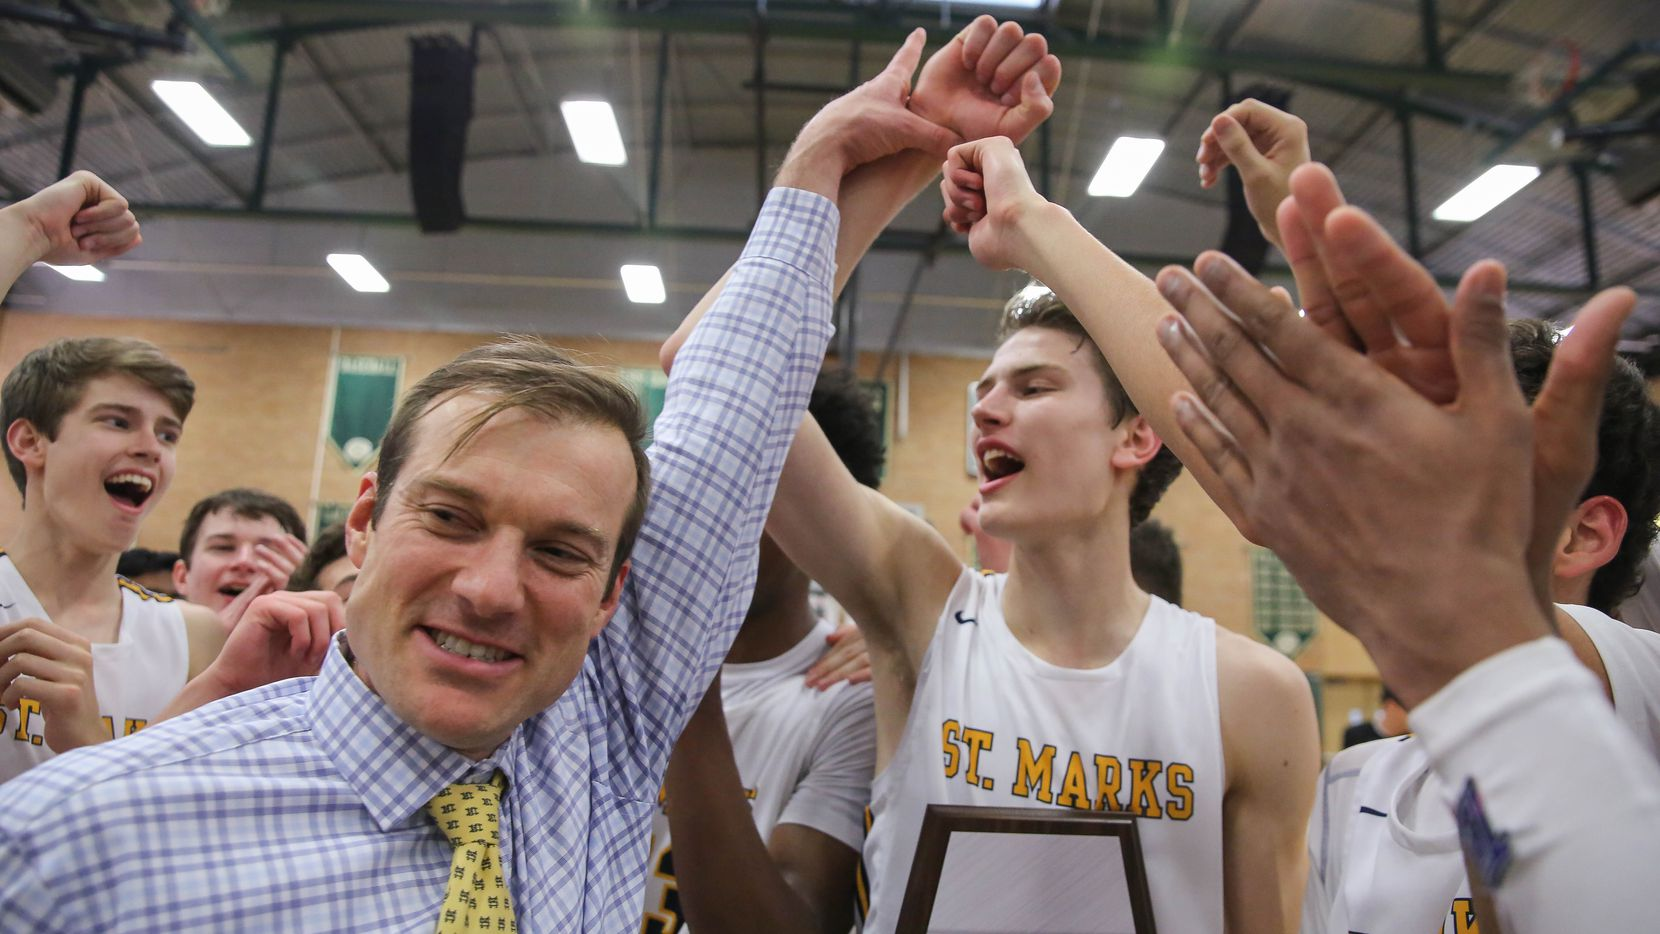 St. Mark's coach Greg Guiler (left) celebrates with his team after winning a SPC boys basketball championship game against Houston Christian on Feb. 15, 2020 held at The Greenhill School inAddison. St. Mark's won 85-57.